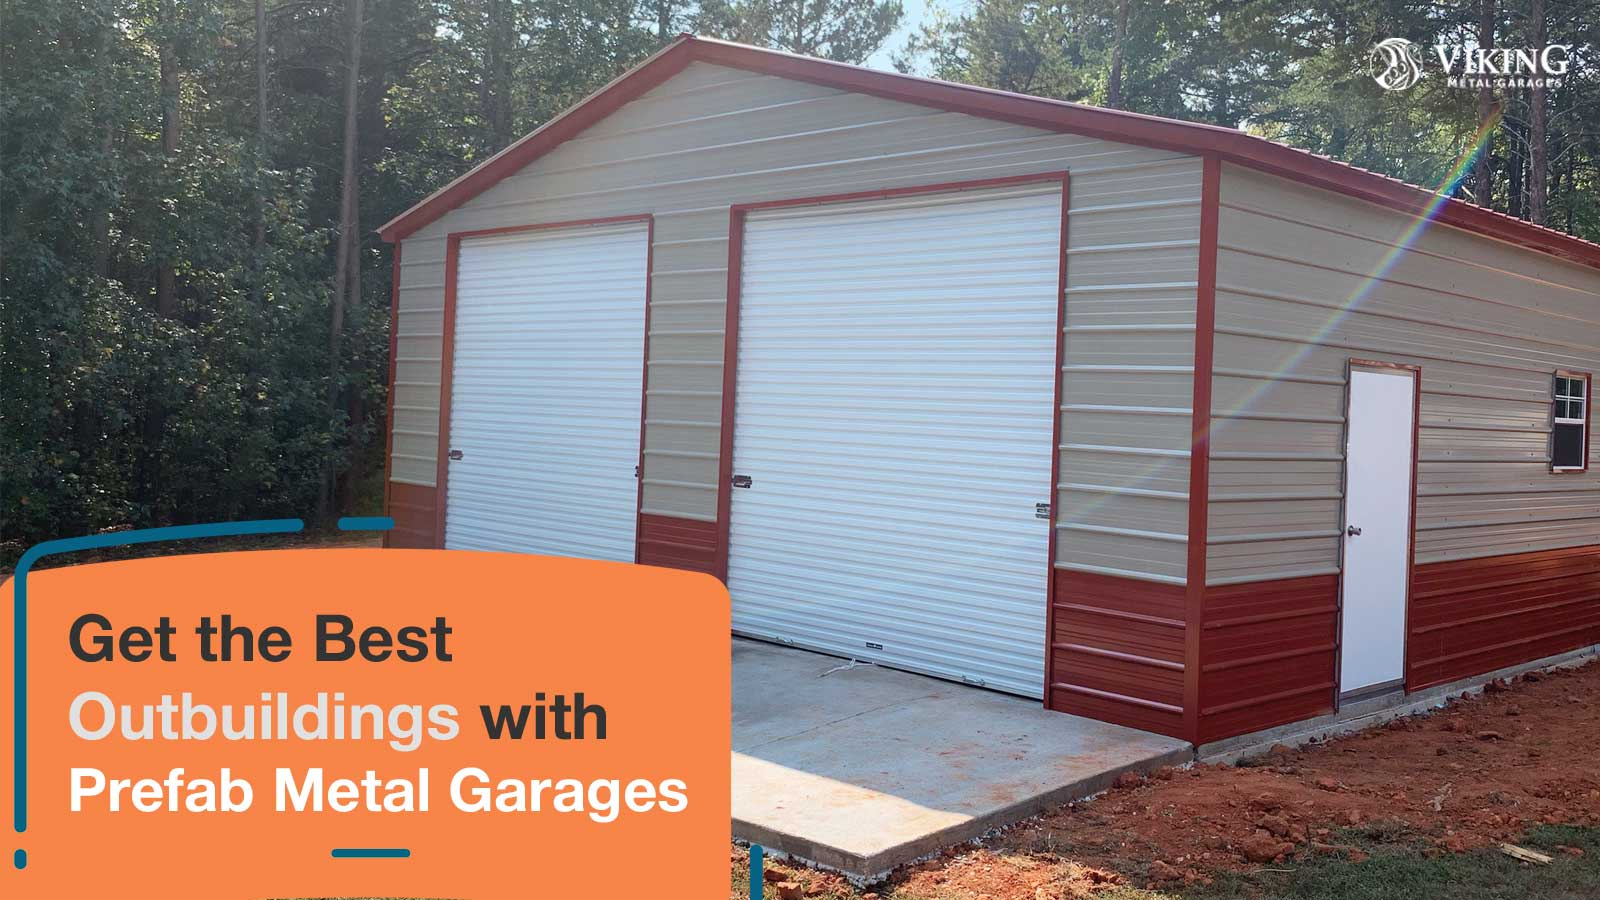 Get the Best Outbuildings with Prefab Metal Garages